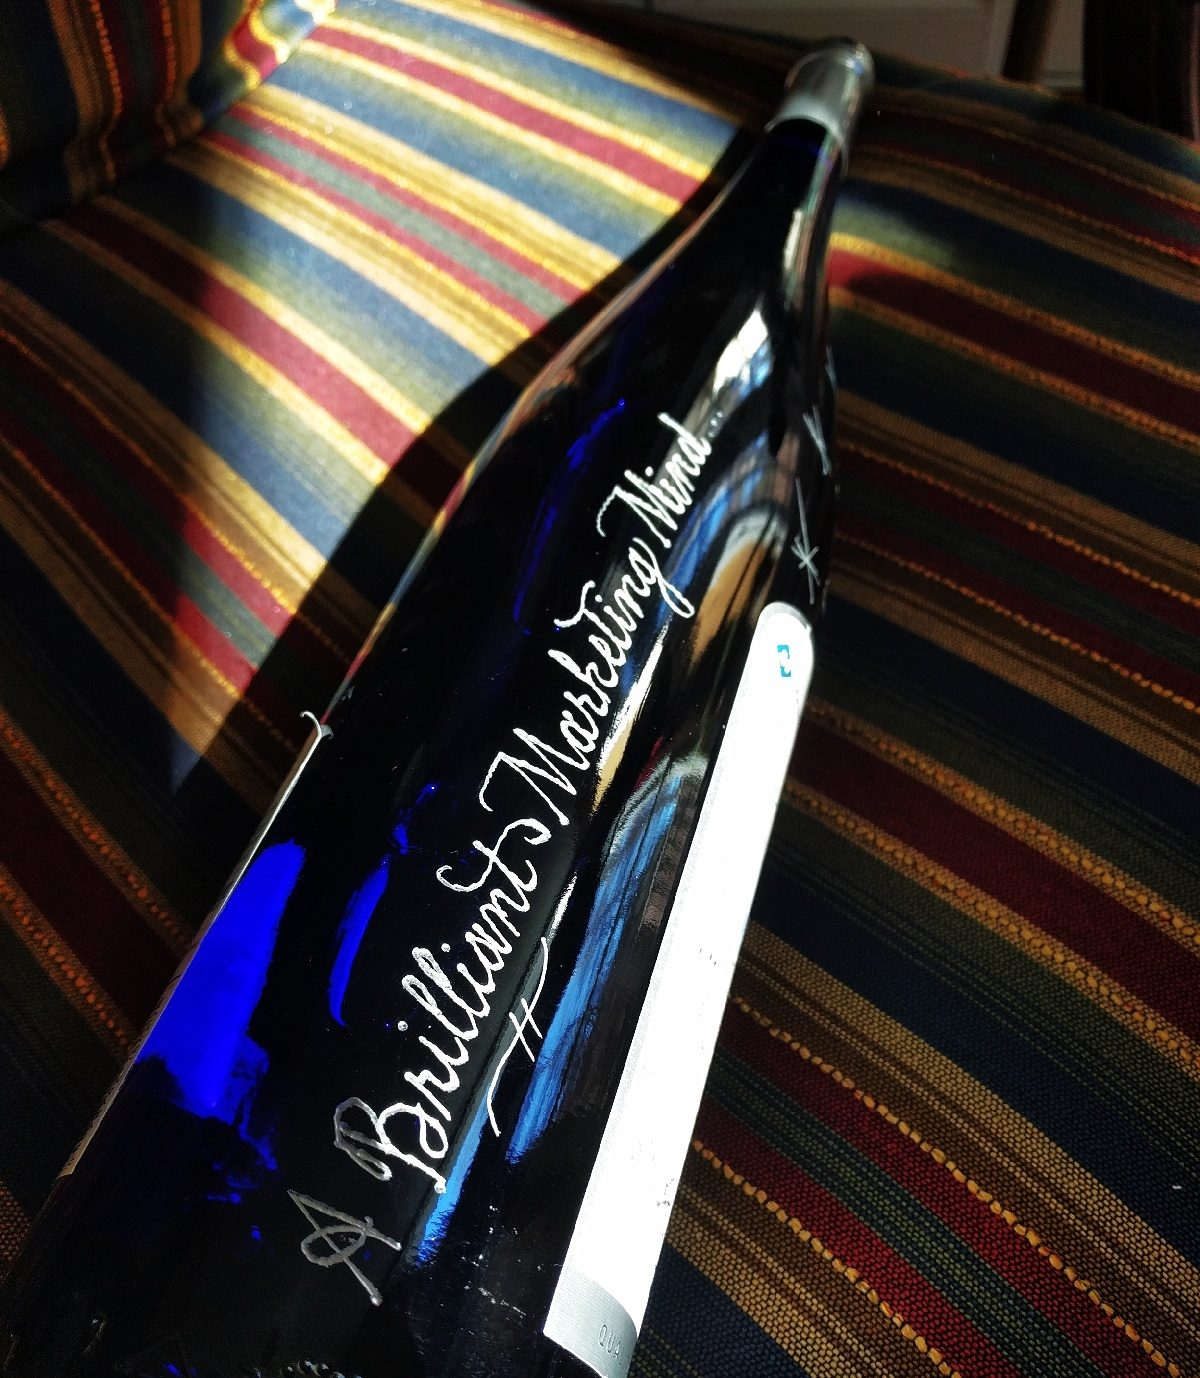 An Engraved Wine Bottle Always Makes a Memorable Corporate Gift